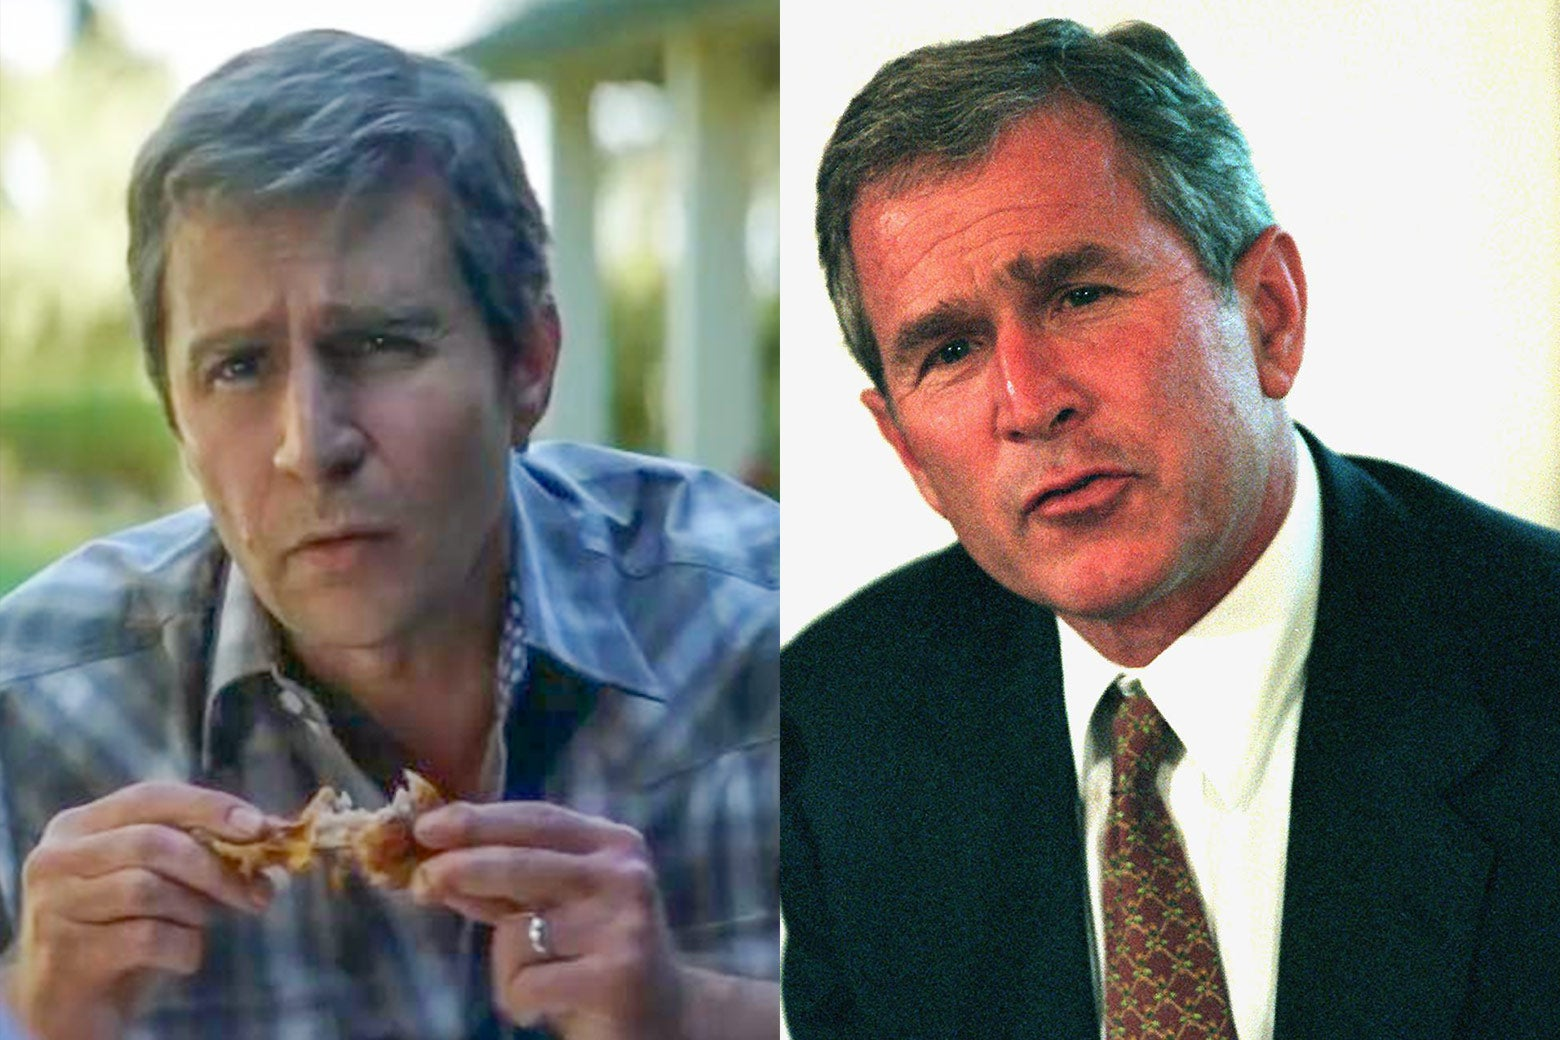 Side-by-side of Sam Rockwell and former U.S. President George W. Bush